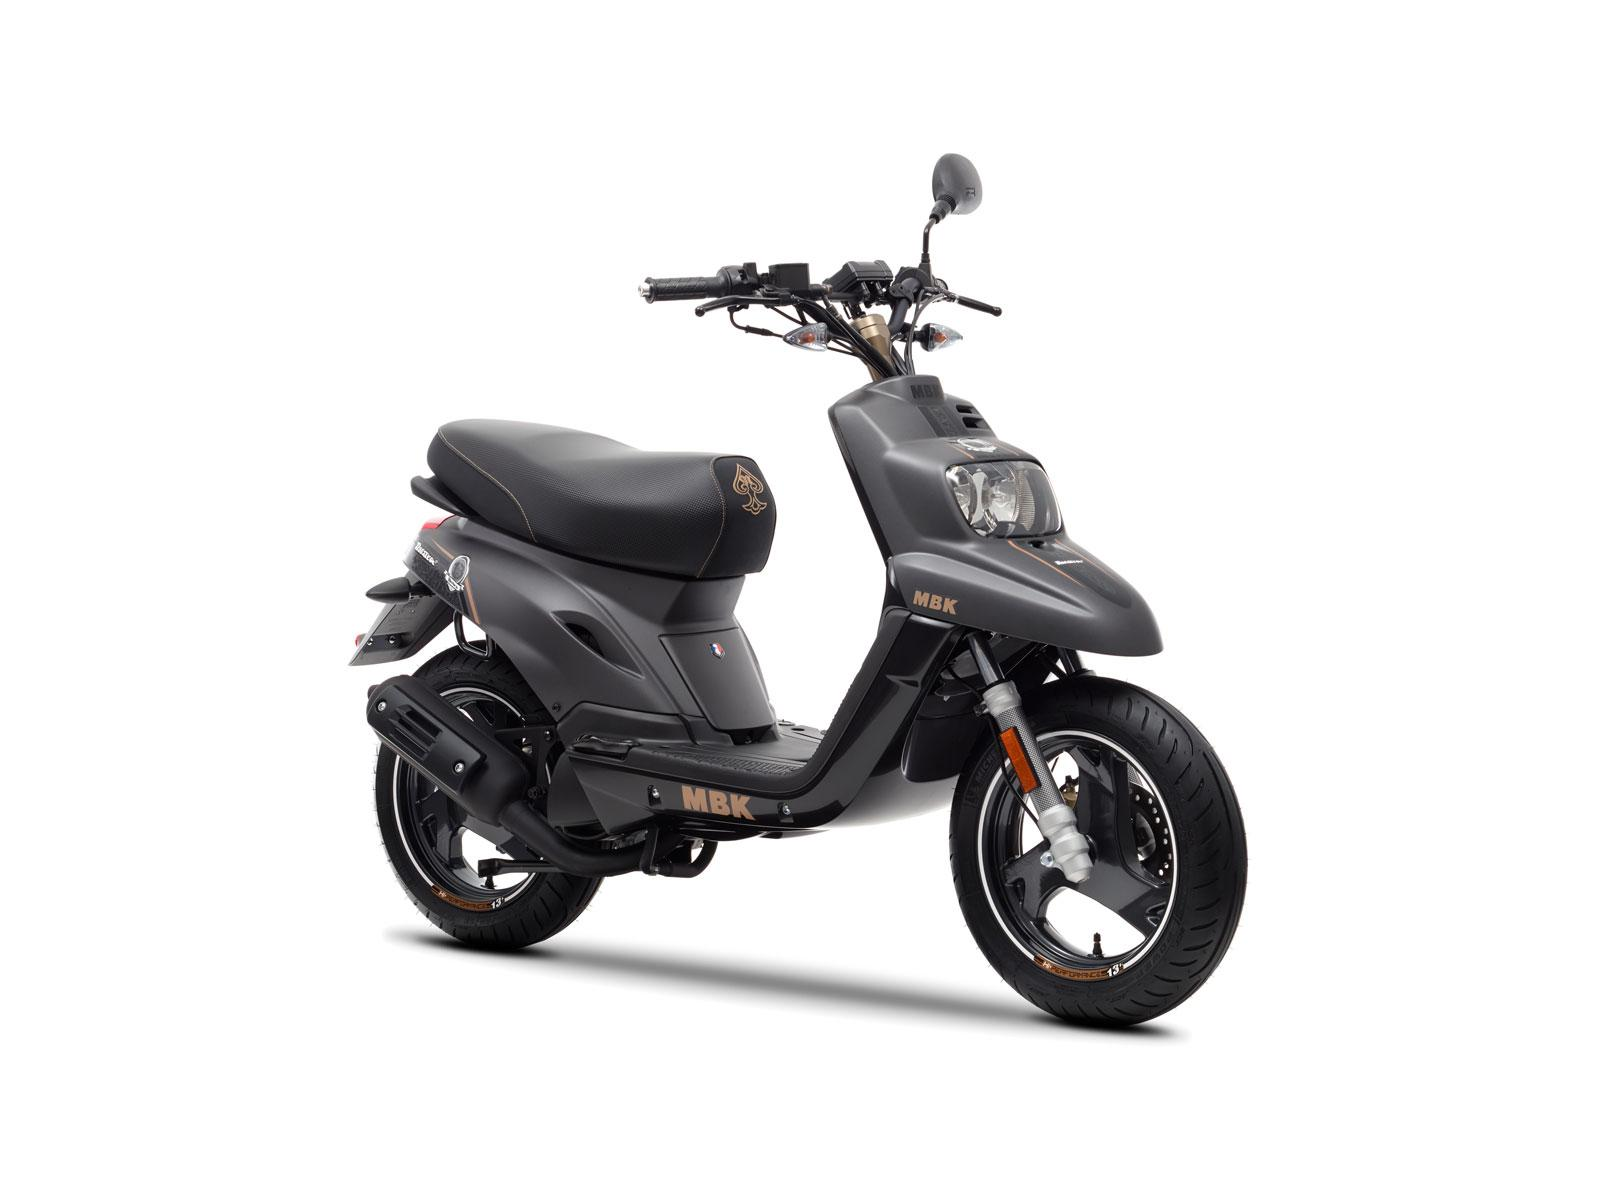 2009 MBK Booster 12inch Naked Scooter pictures, specifications